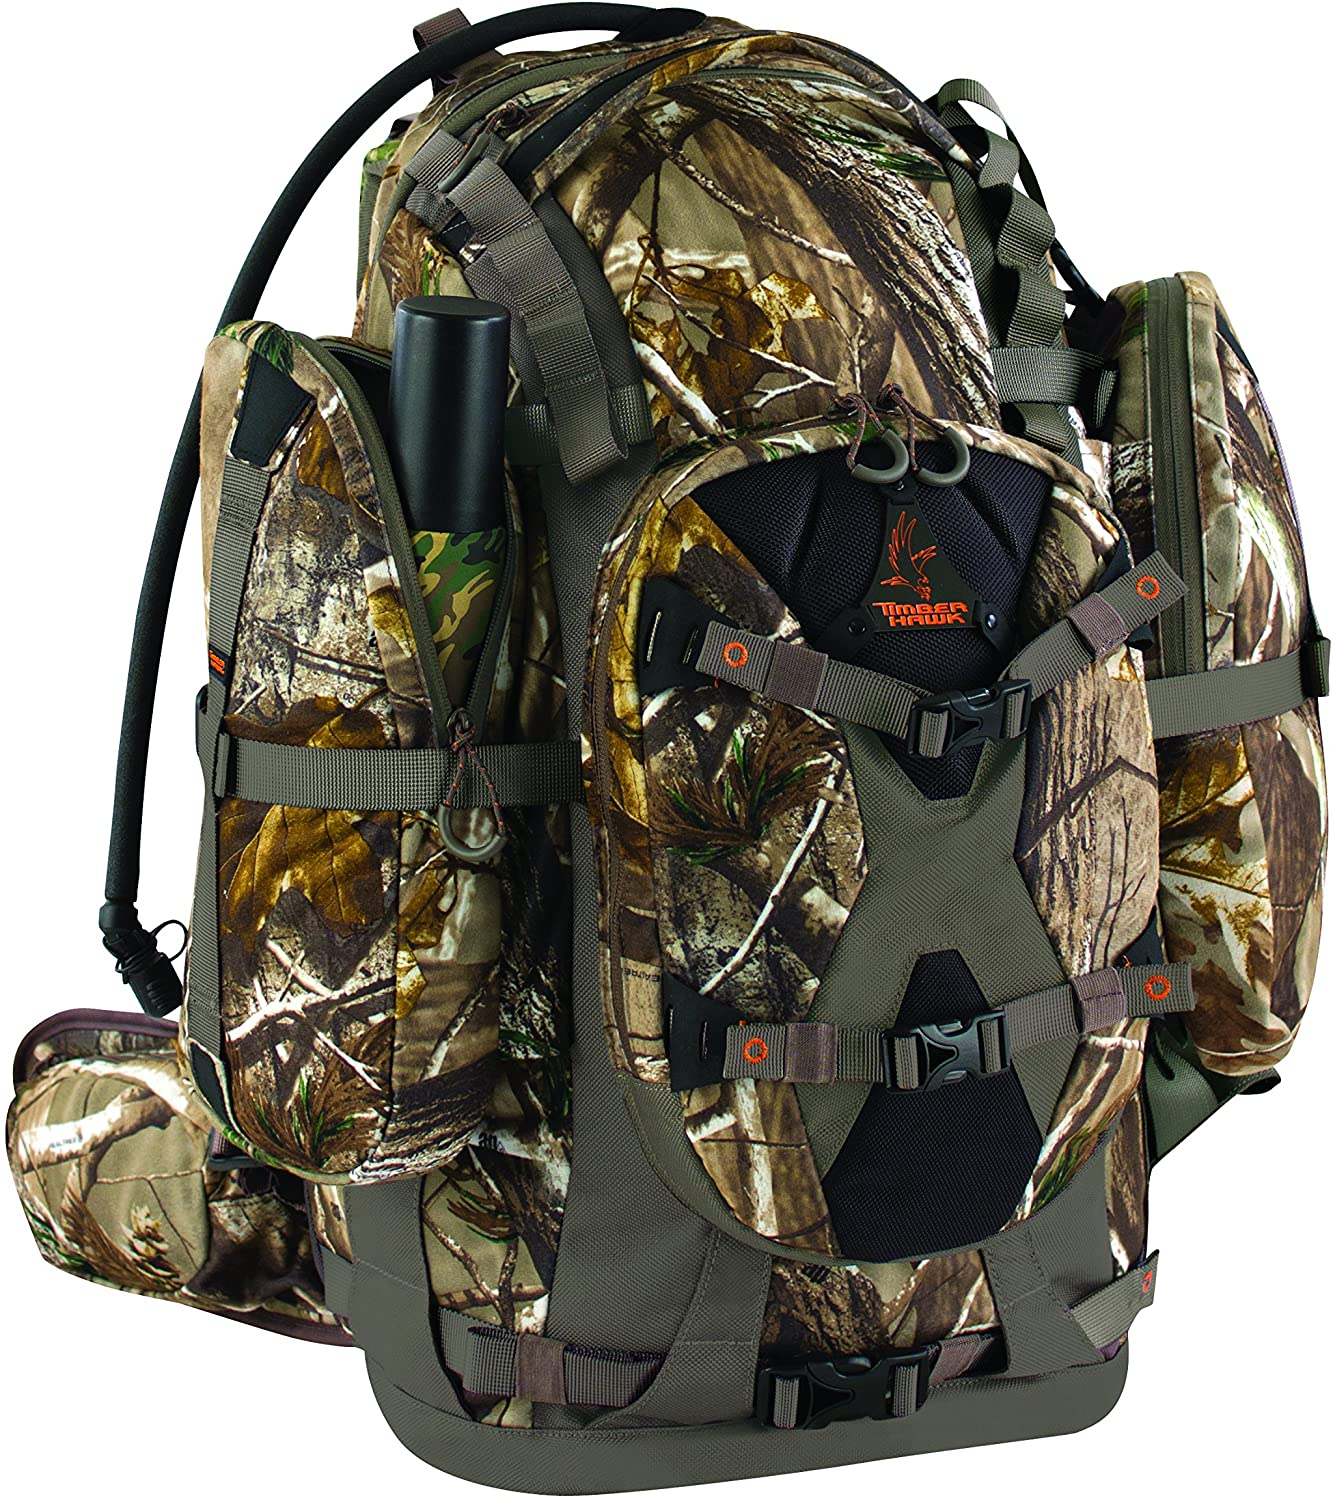 Timber Hawk Hillshot Hunting Backpack in wood camoflauge